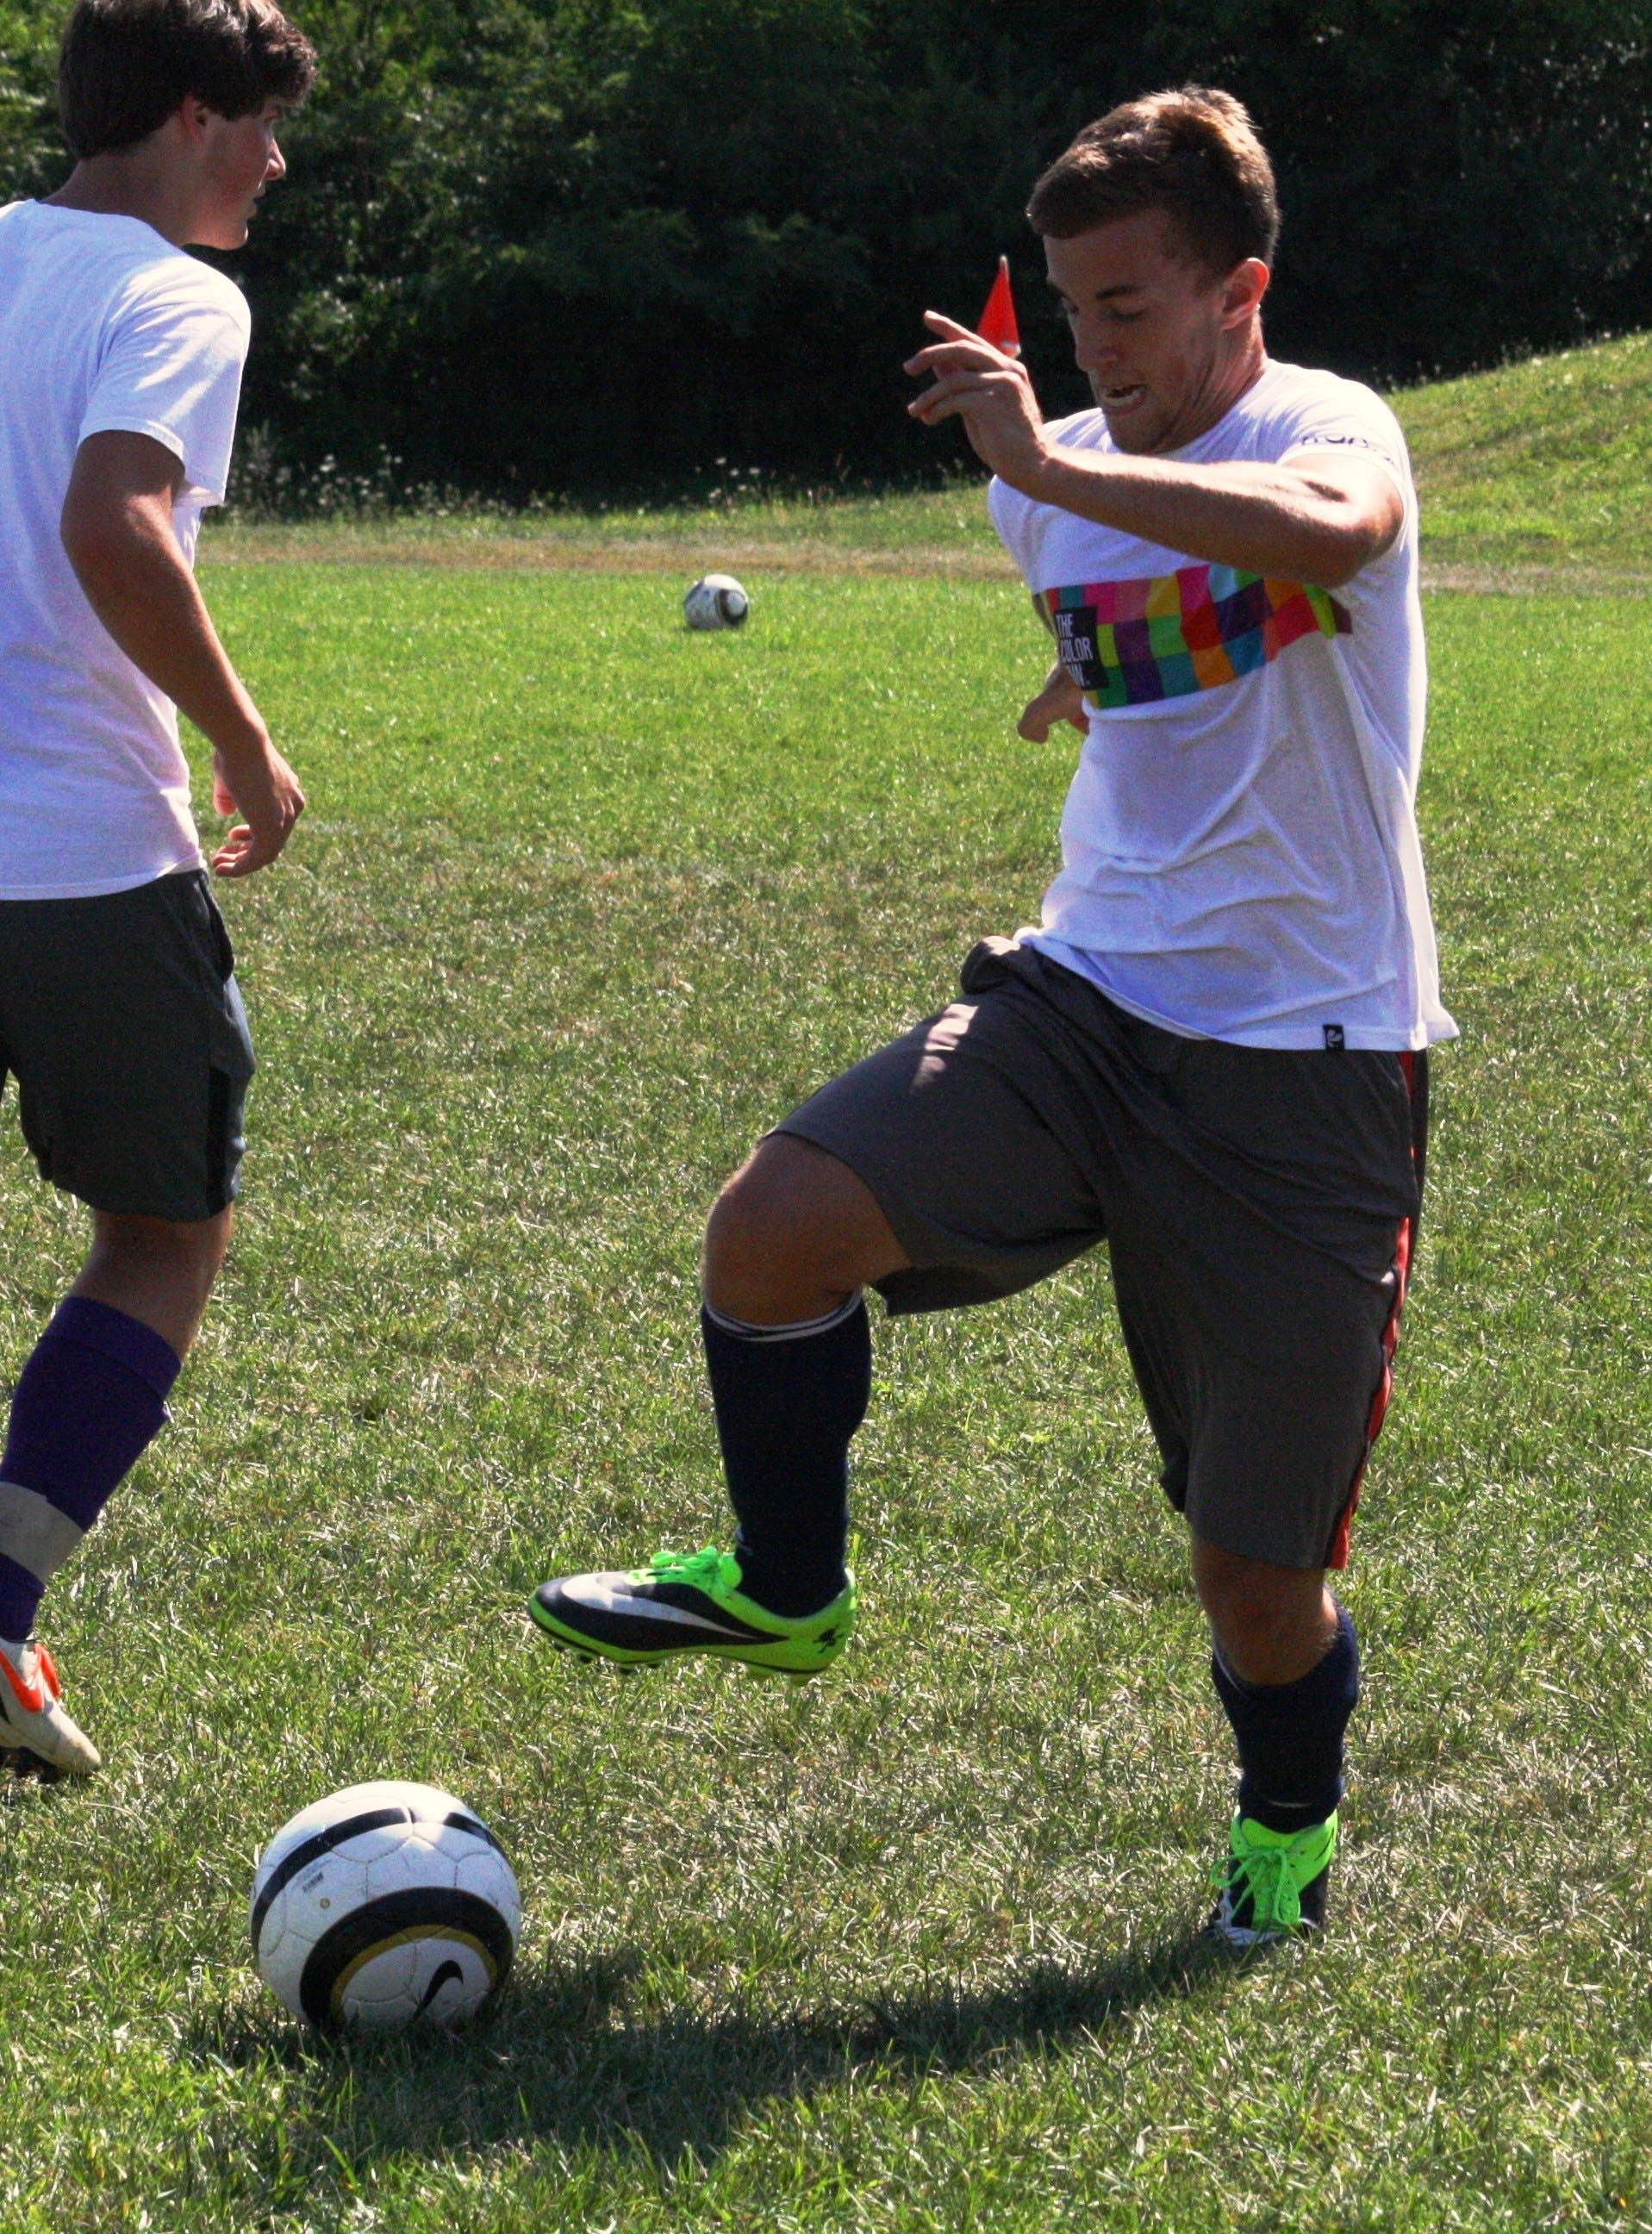 Elder High School senior Nick Pangallo knocks the ball down during a practice drill Aug. 13 at the Panther Athletic Complex. Pangallo is a co-captain this season along with junior Joey Sabato.